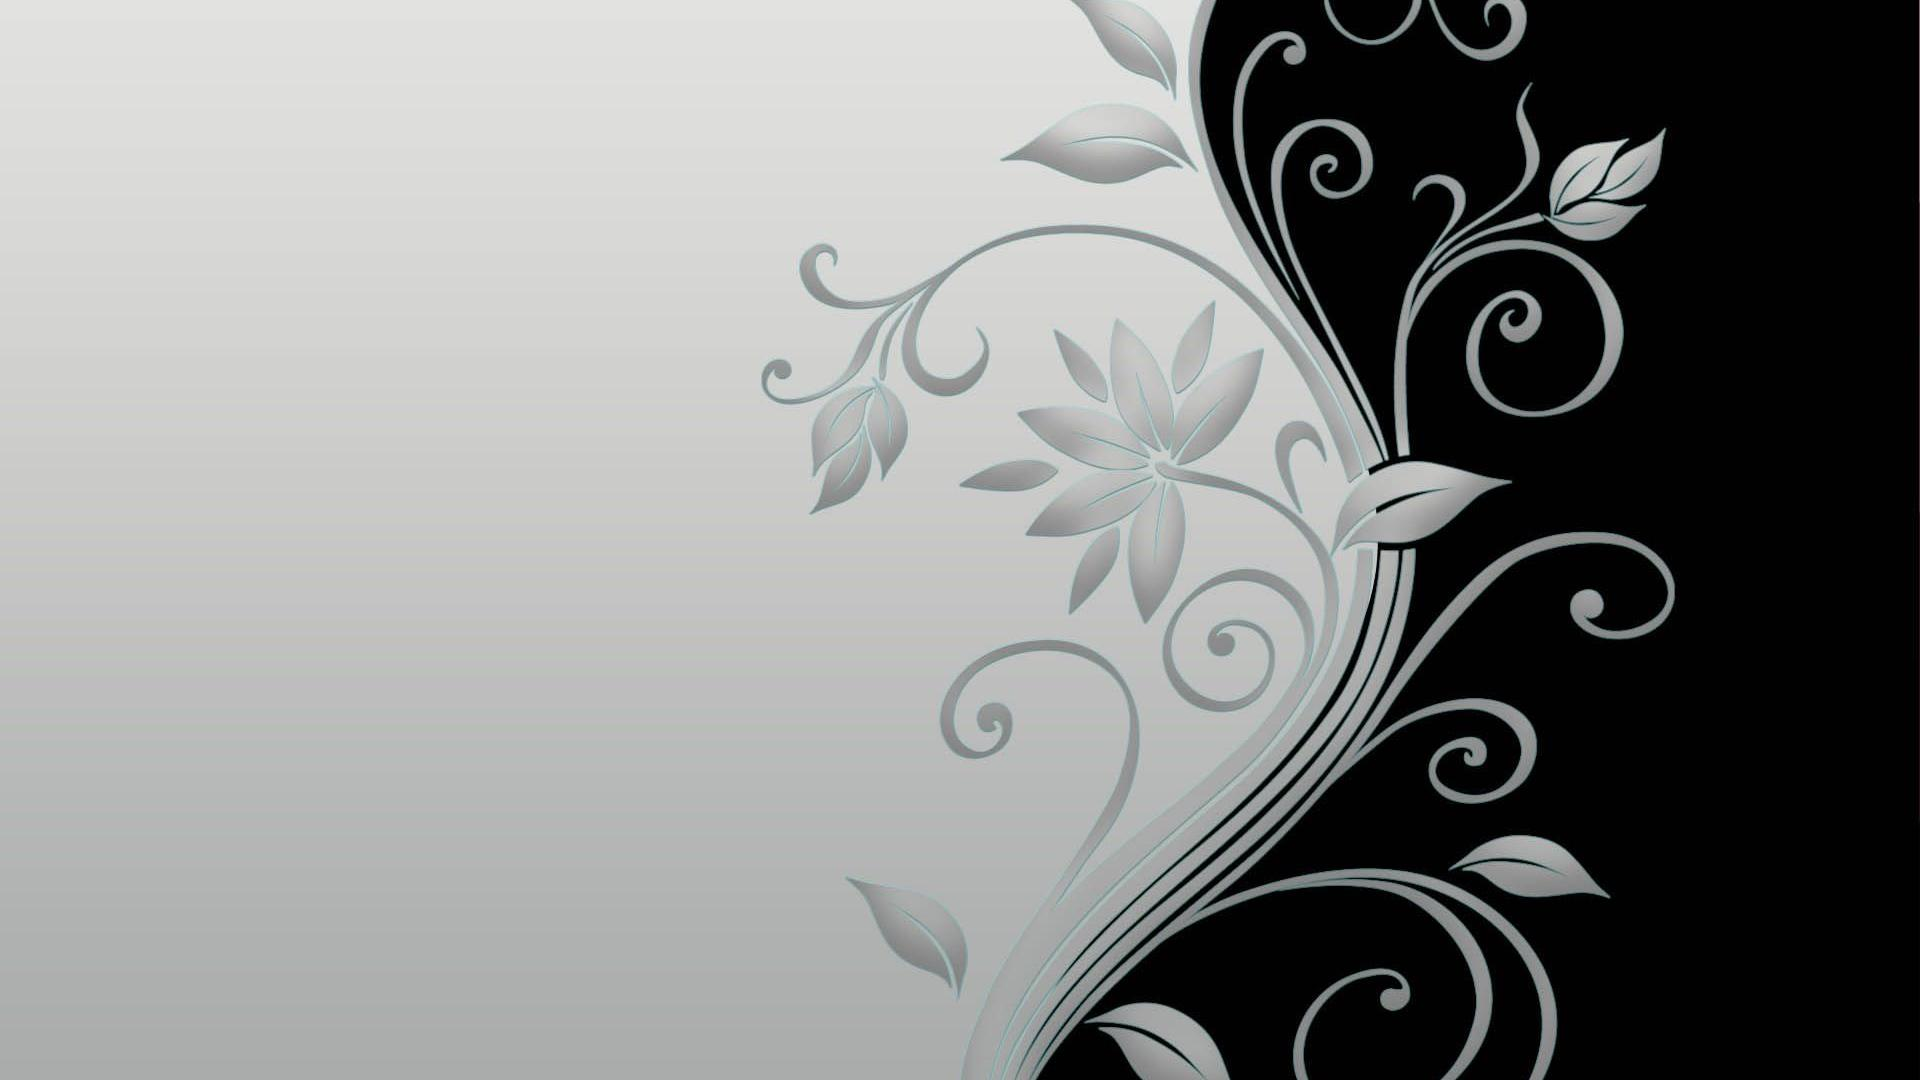 Black And White Floral Wallpaper 15 High Resolution Wallpaper